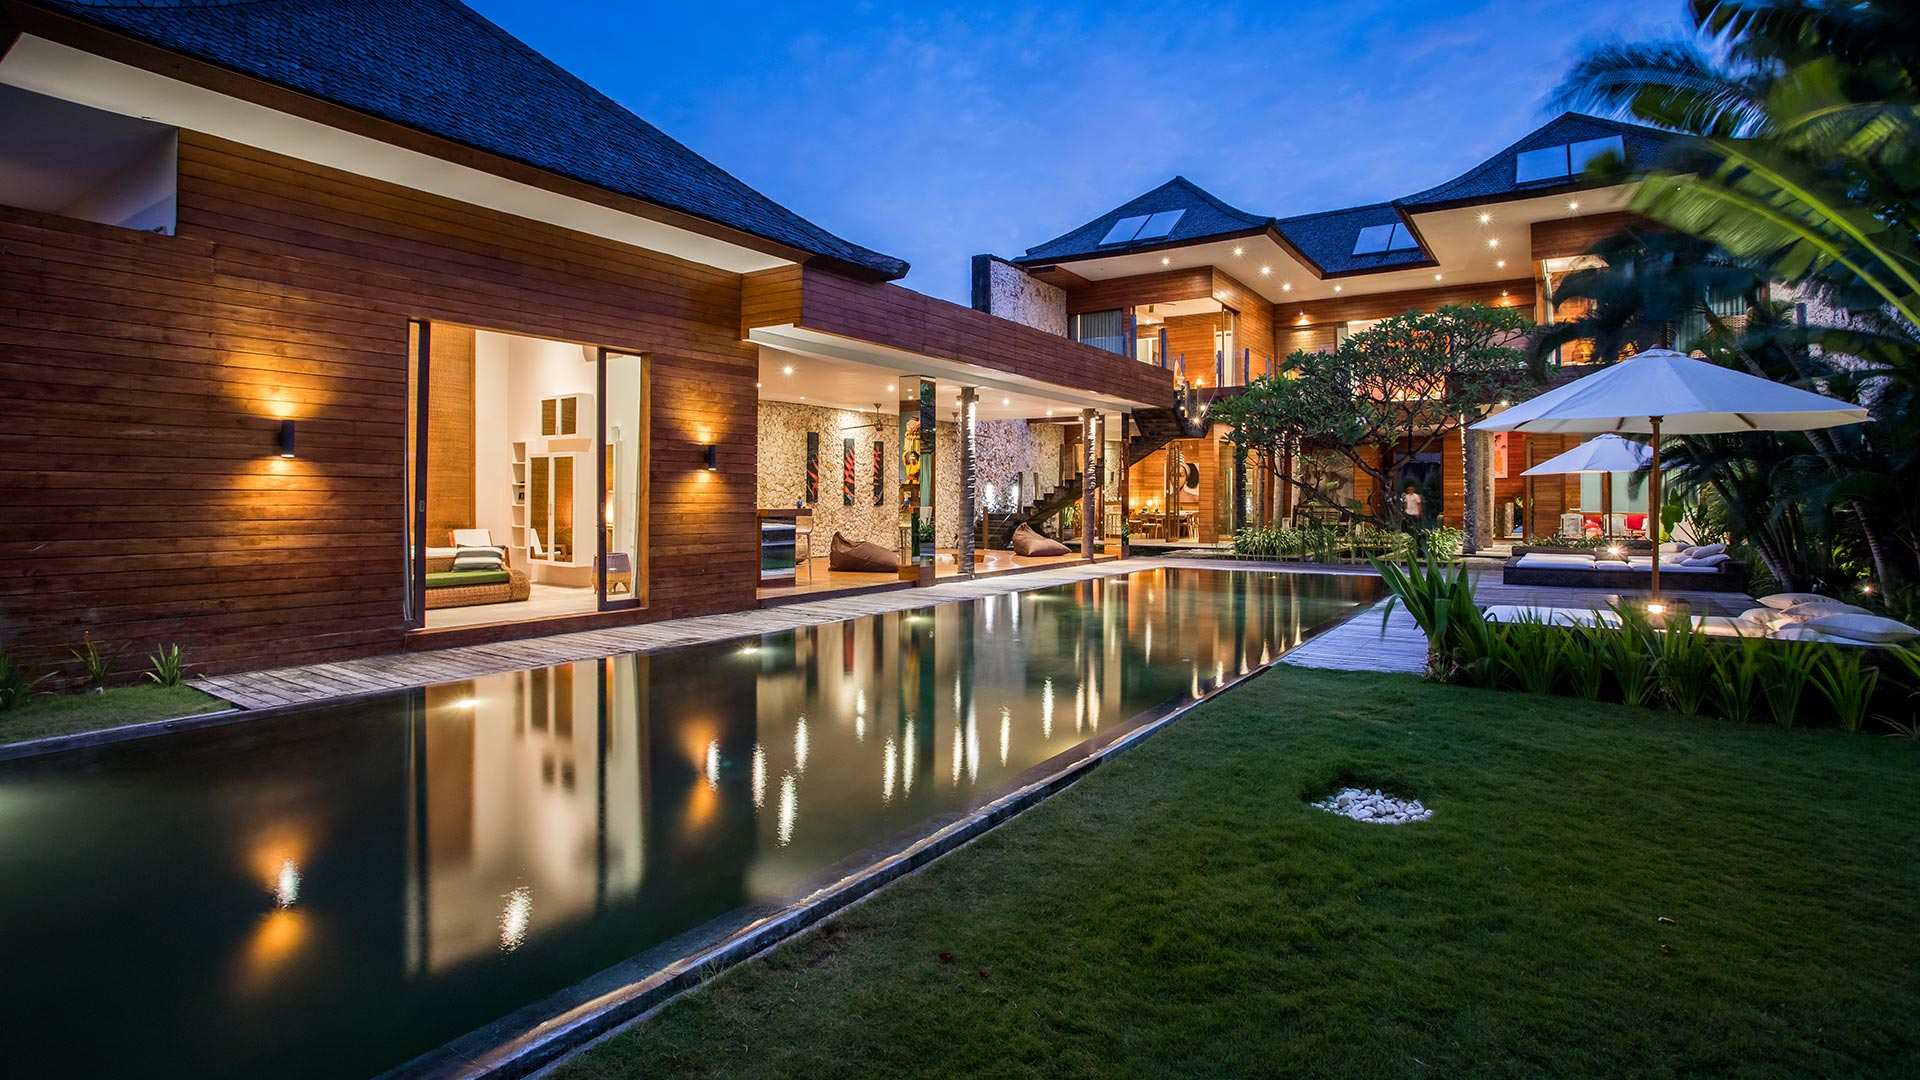 Eko Villa Bali is an exclusive 4 bedroom villas situated in strategic area of Seminyak, nearby beaches and famous restaurants.